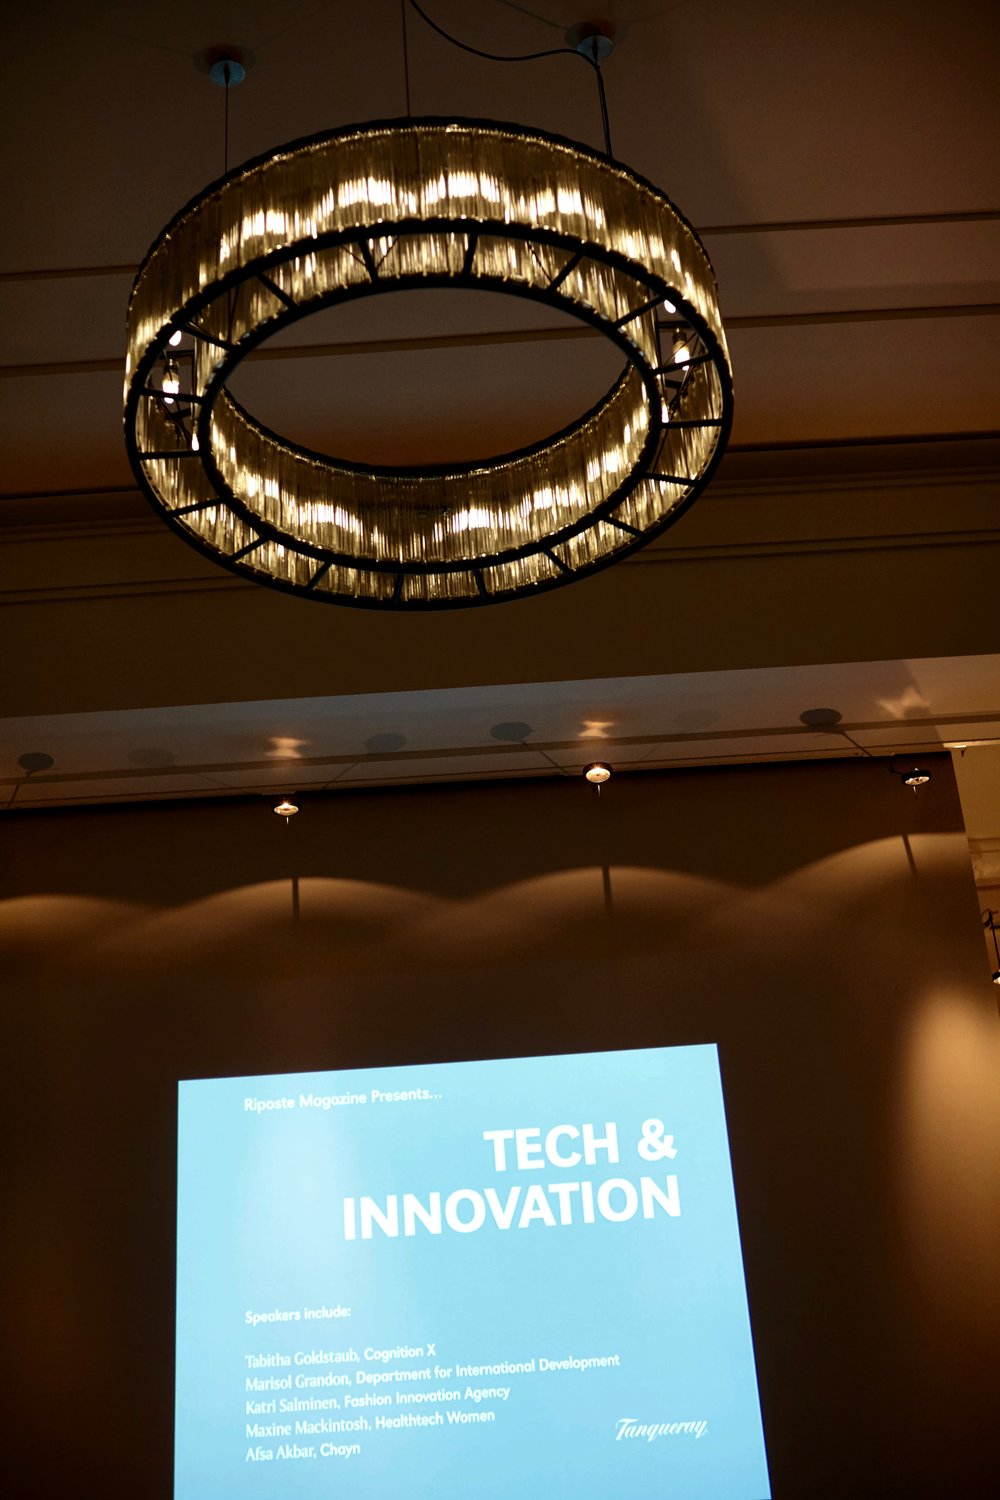 EVENTS: RIPOSTE PRESENTS... TECH & INNOVATION Last night we hosted our October edition of Riposte Presents, click through for a write up of what went down. Read More >